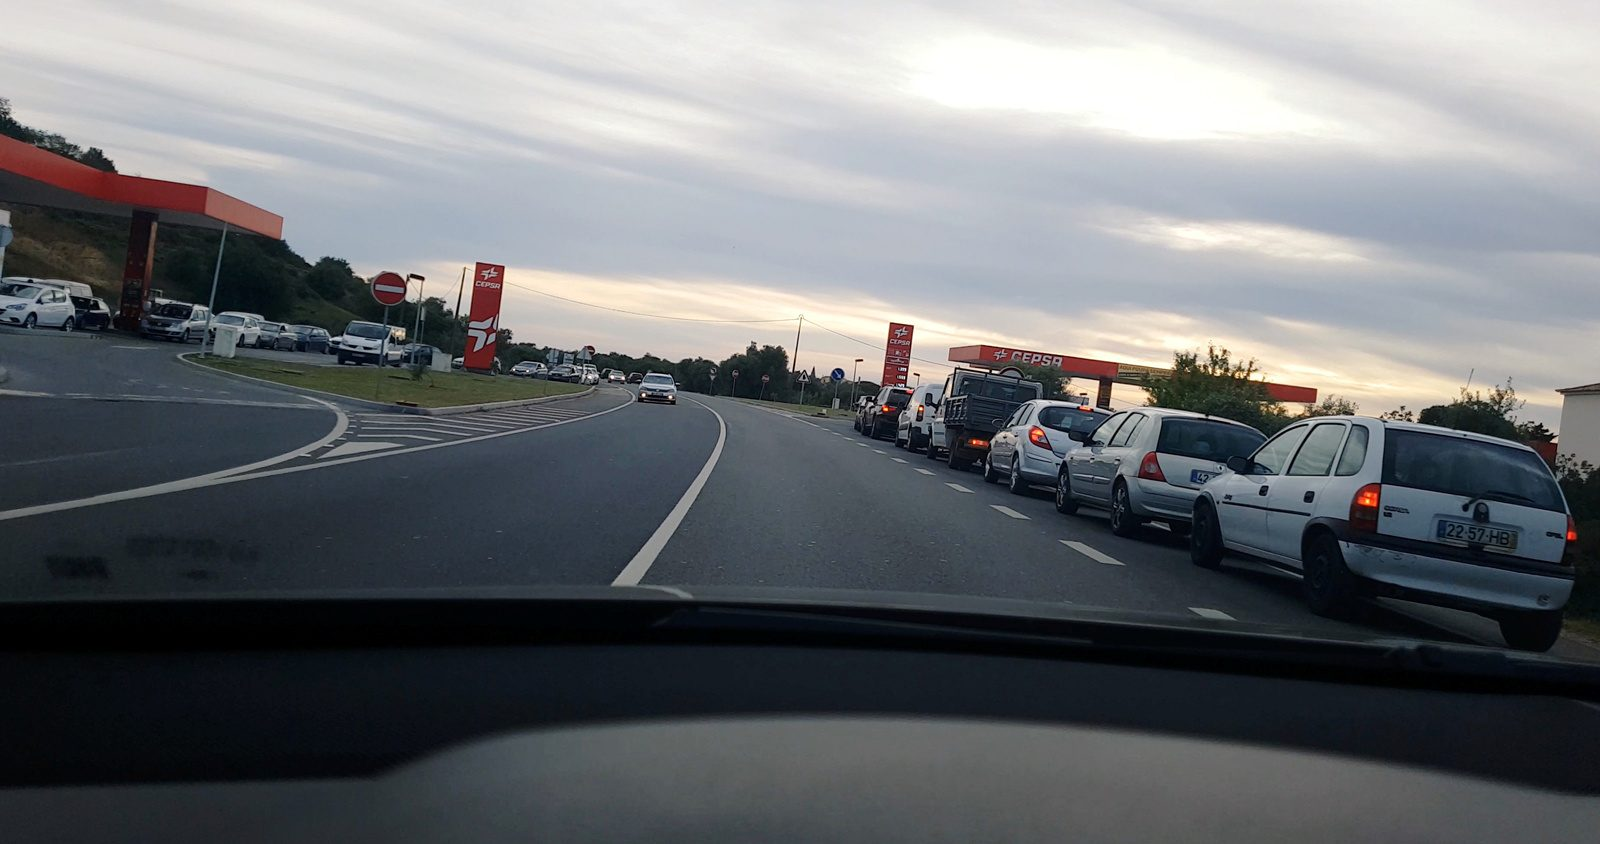 Cars and trucks line up for fuel in Albufeira, Portugal April 16, 2019 in this still image taken from social media video.